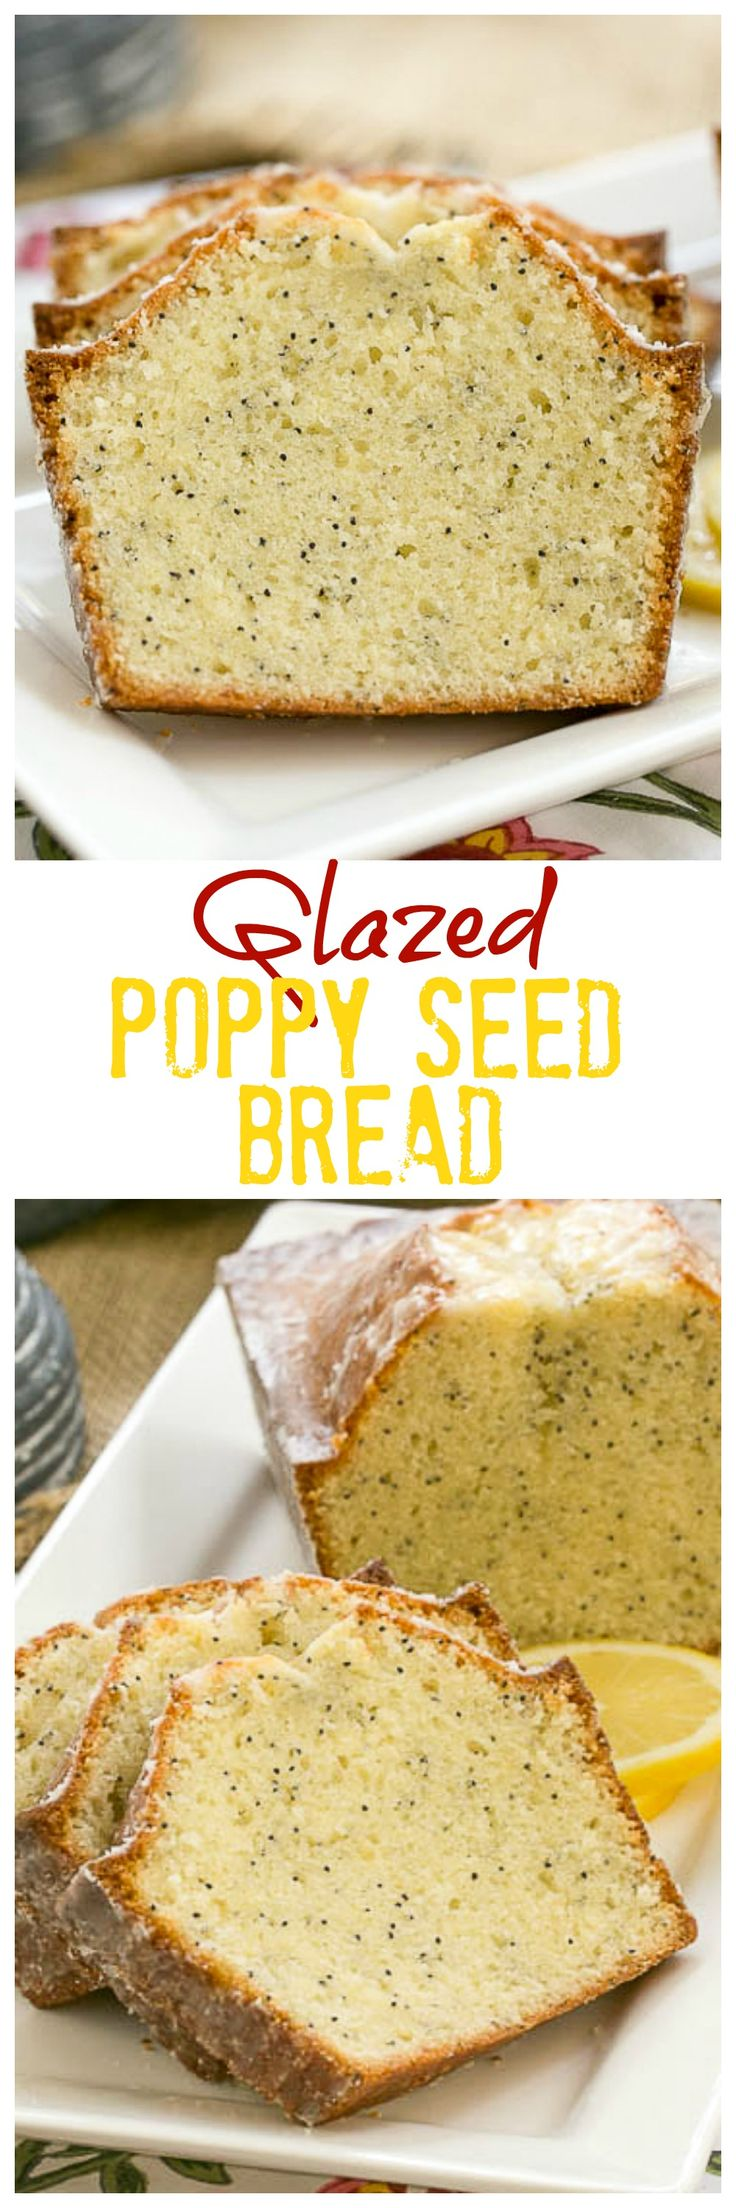 Glazed Poppy Seed Bread | A moist quick bread flavored with vanilla and almond & topped with a lemon glaze @lizzydo